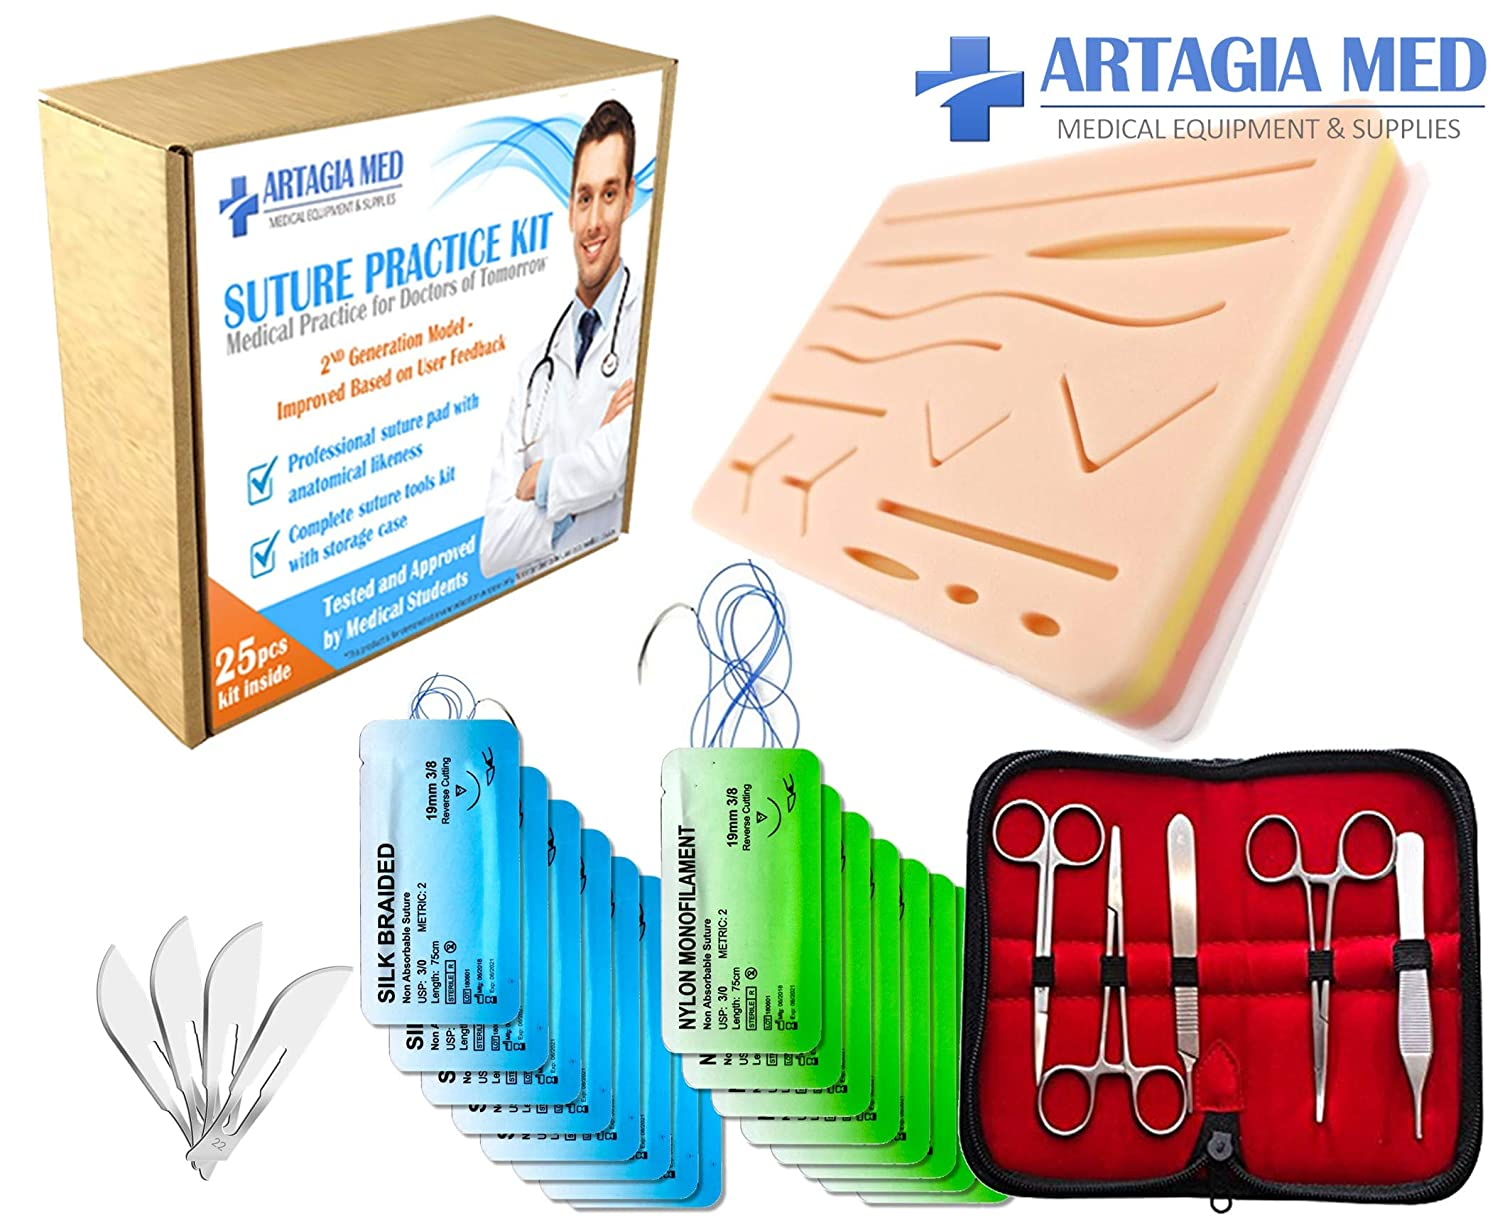 Complete Suture Practice Kit for Suture Training, including Large Silicone Suture Pad with pre-cut wounds and suture tool kit (25 pieces). 2nd Generation Model. (Demonstration and Education Use Only) ARTAGIA